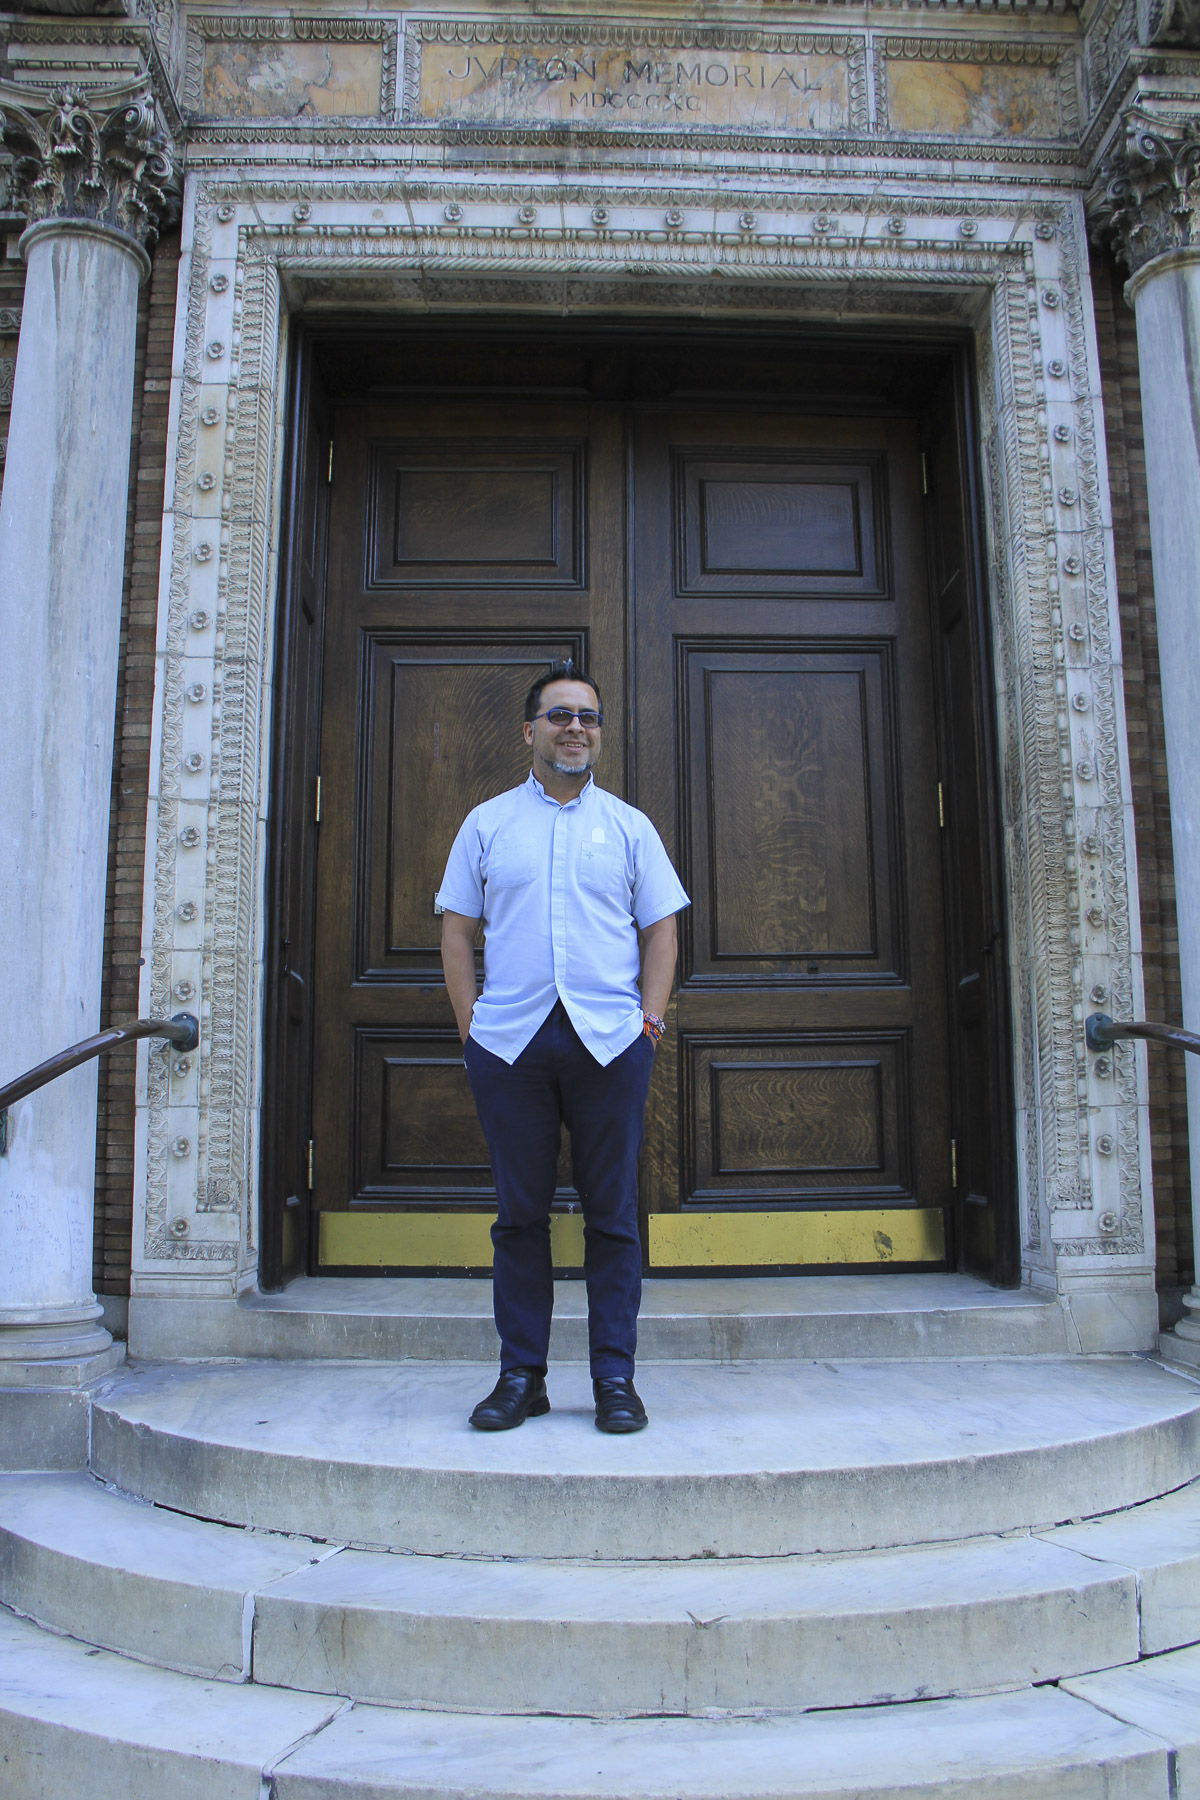 Juan Carlos Ruiz standing outside Judson Memorial Church in Washington Square Park, New York – August 17, 2017.